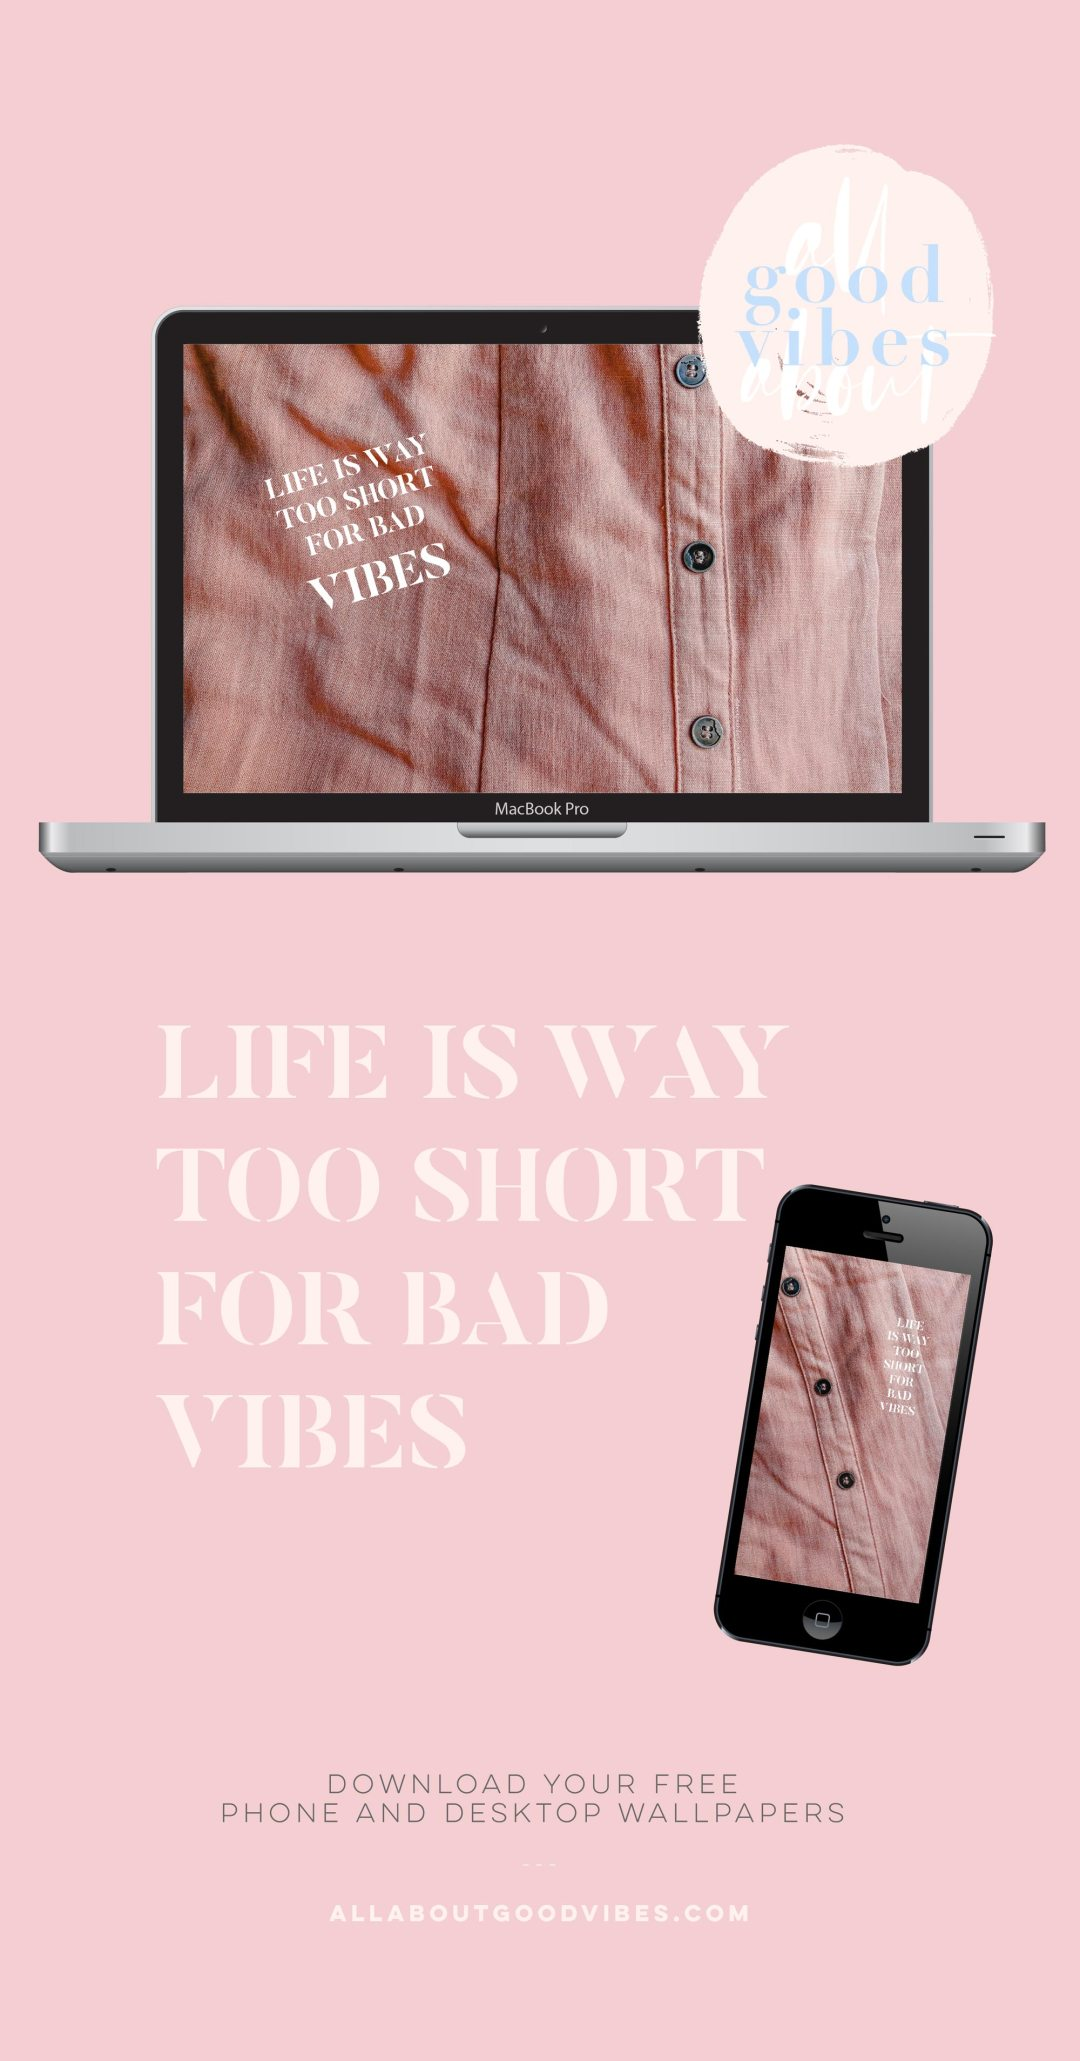 Life-is-way-too-short-for-bad-vibes-Free-phone-desktop-wallpaper-download-@thevibescloset-allaboutgoodvibes.com